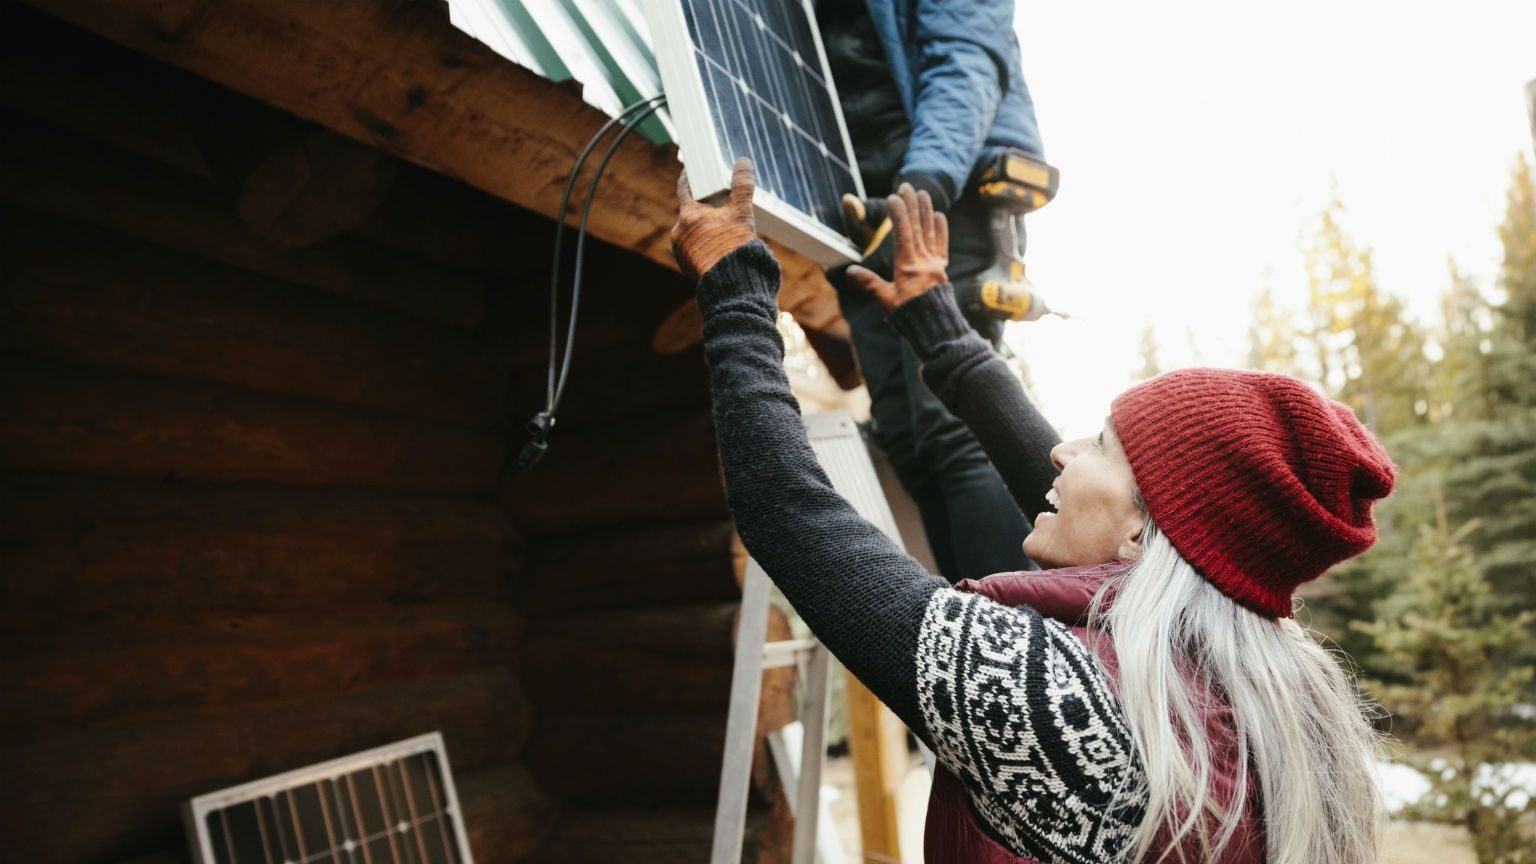 Woman helping man install solar panels on home